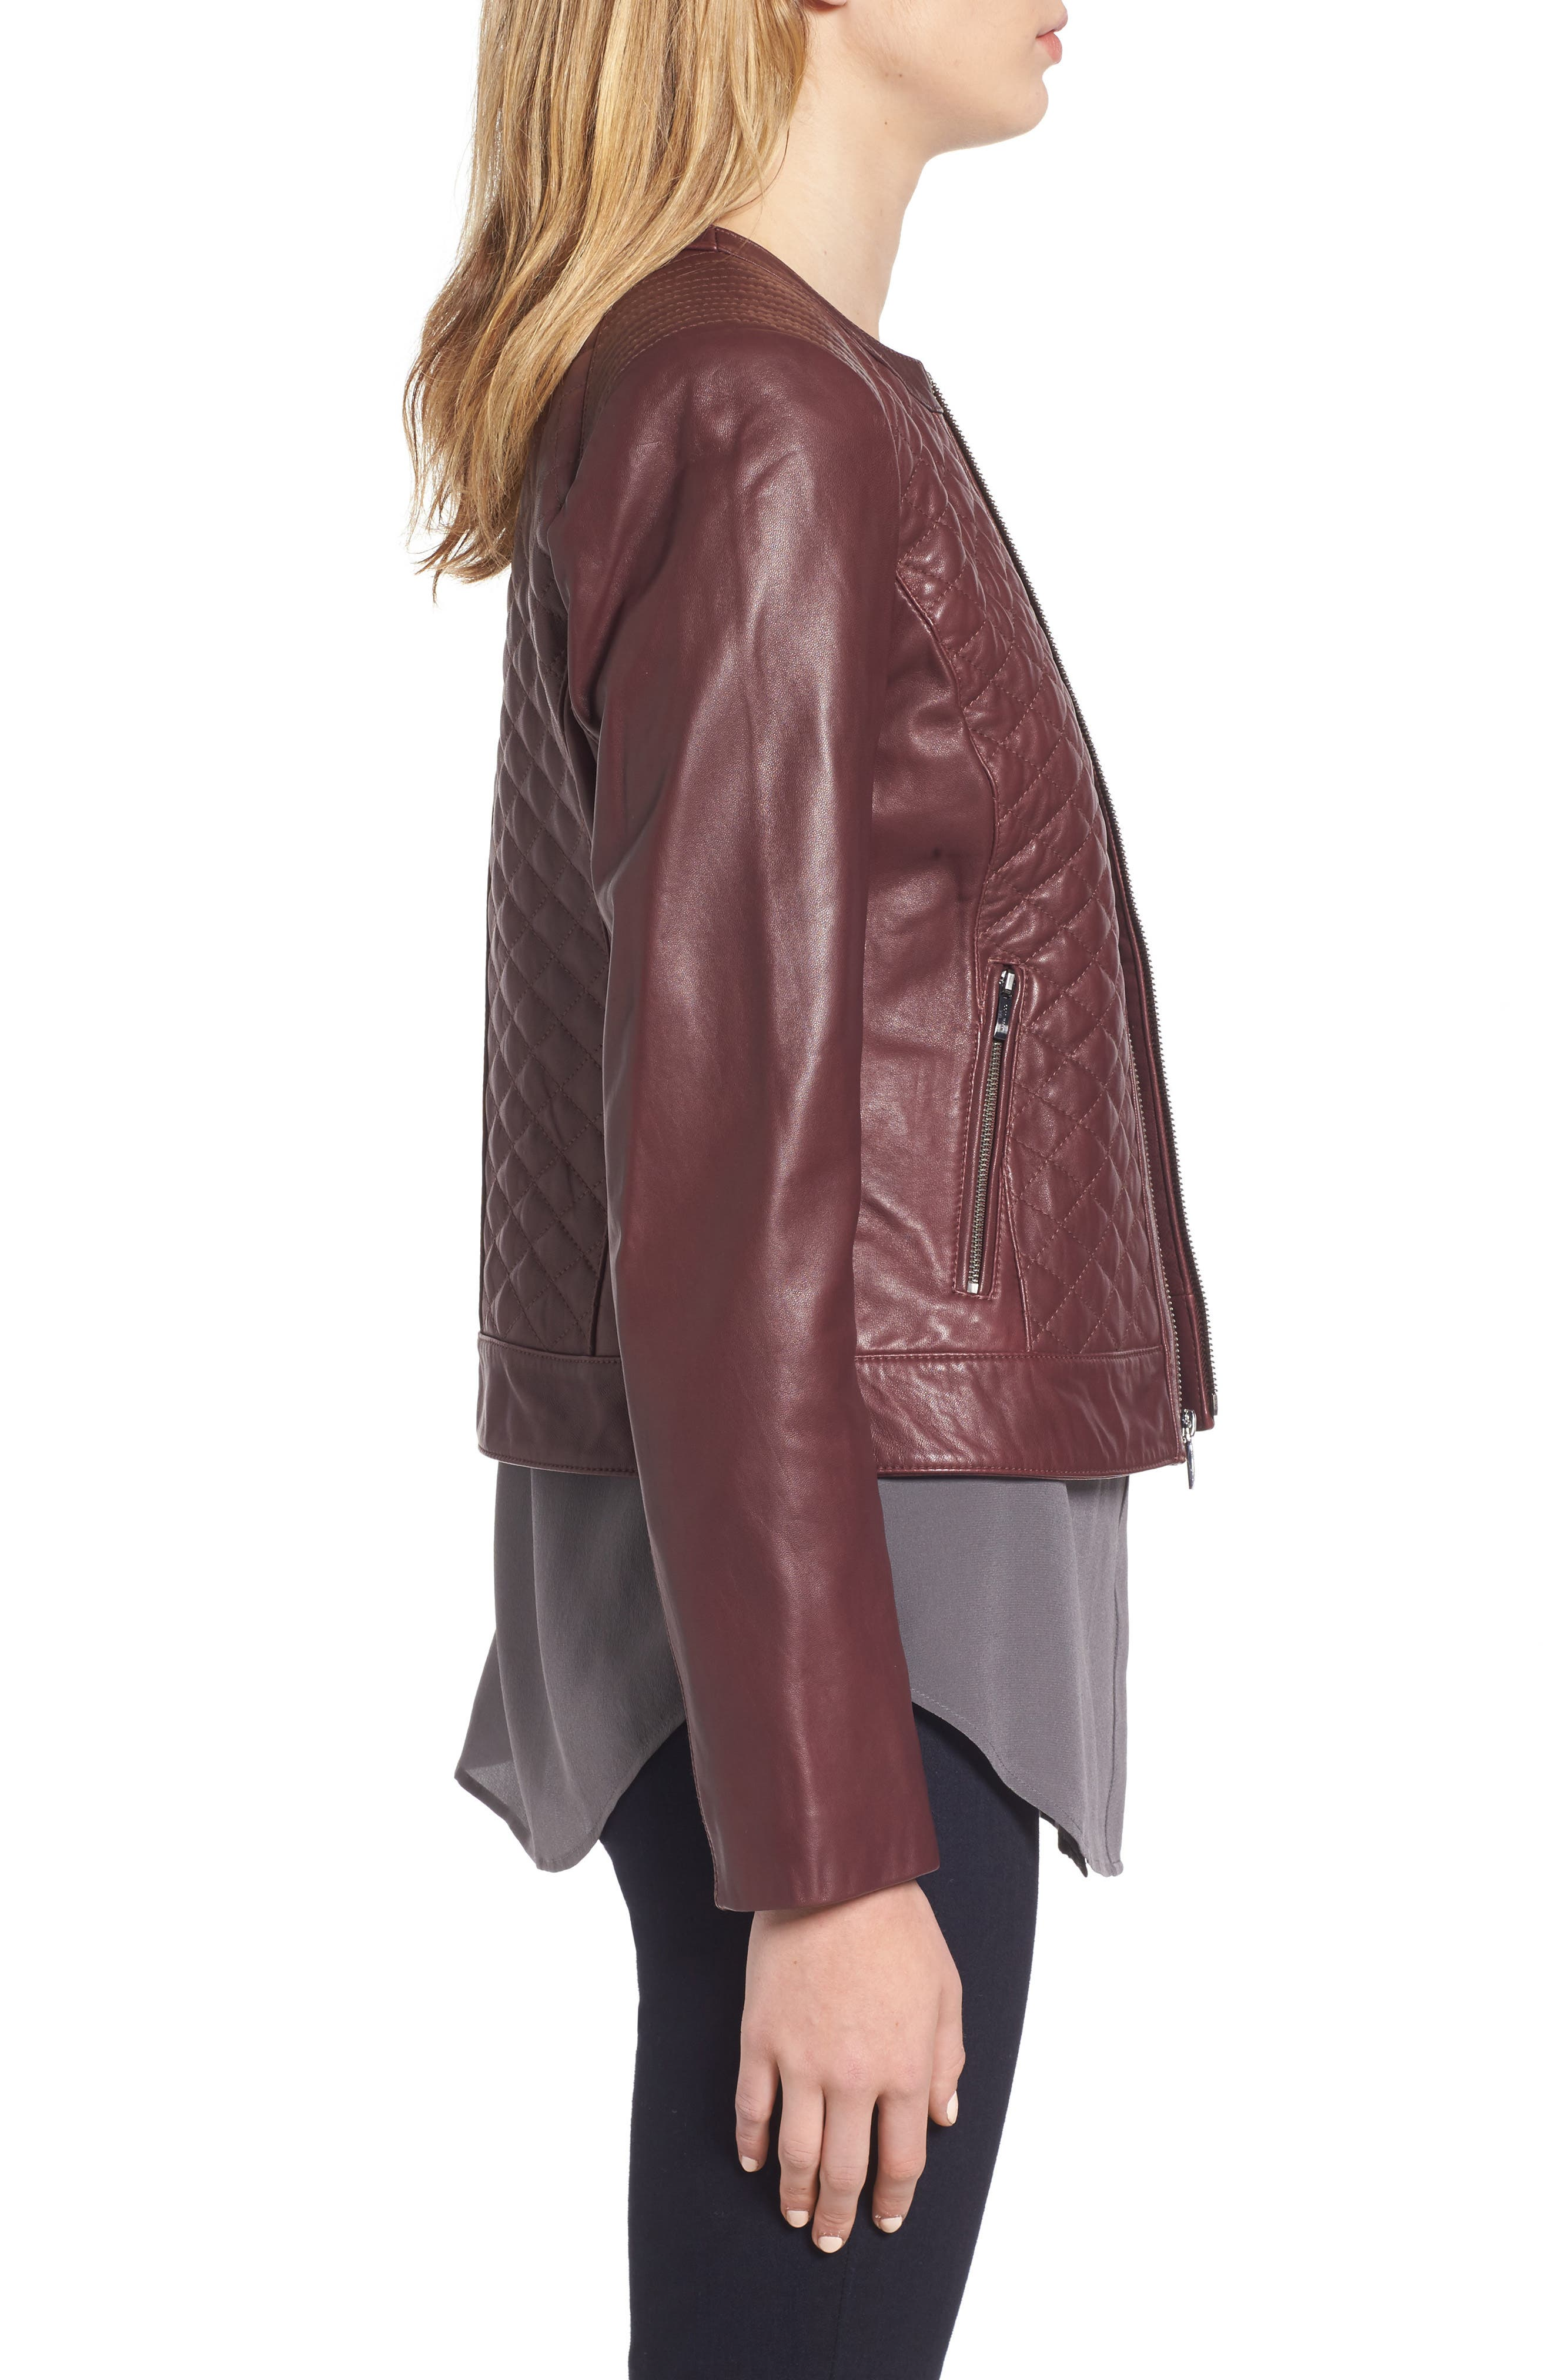 COLE HAAN,                             Quilted Leather Moto Jacket,                             Alternate thumbnail 3, color,                             602